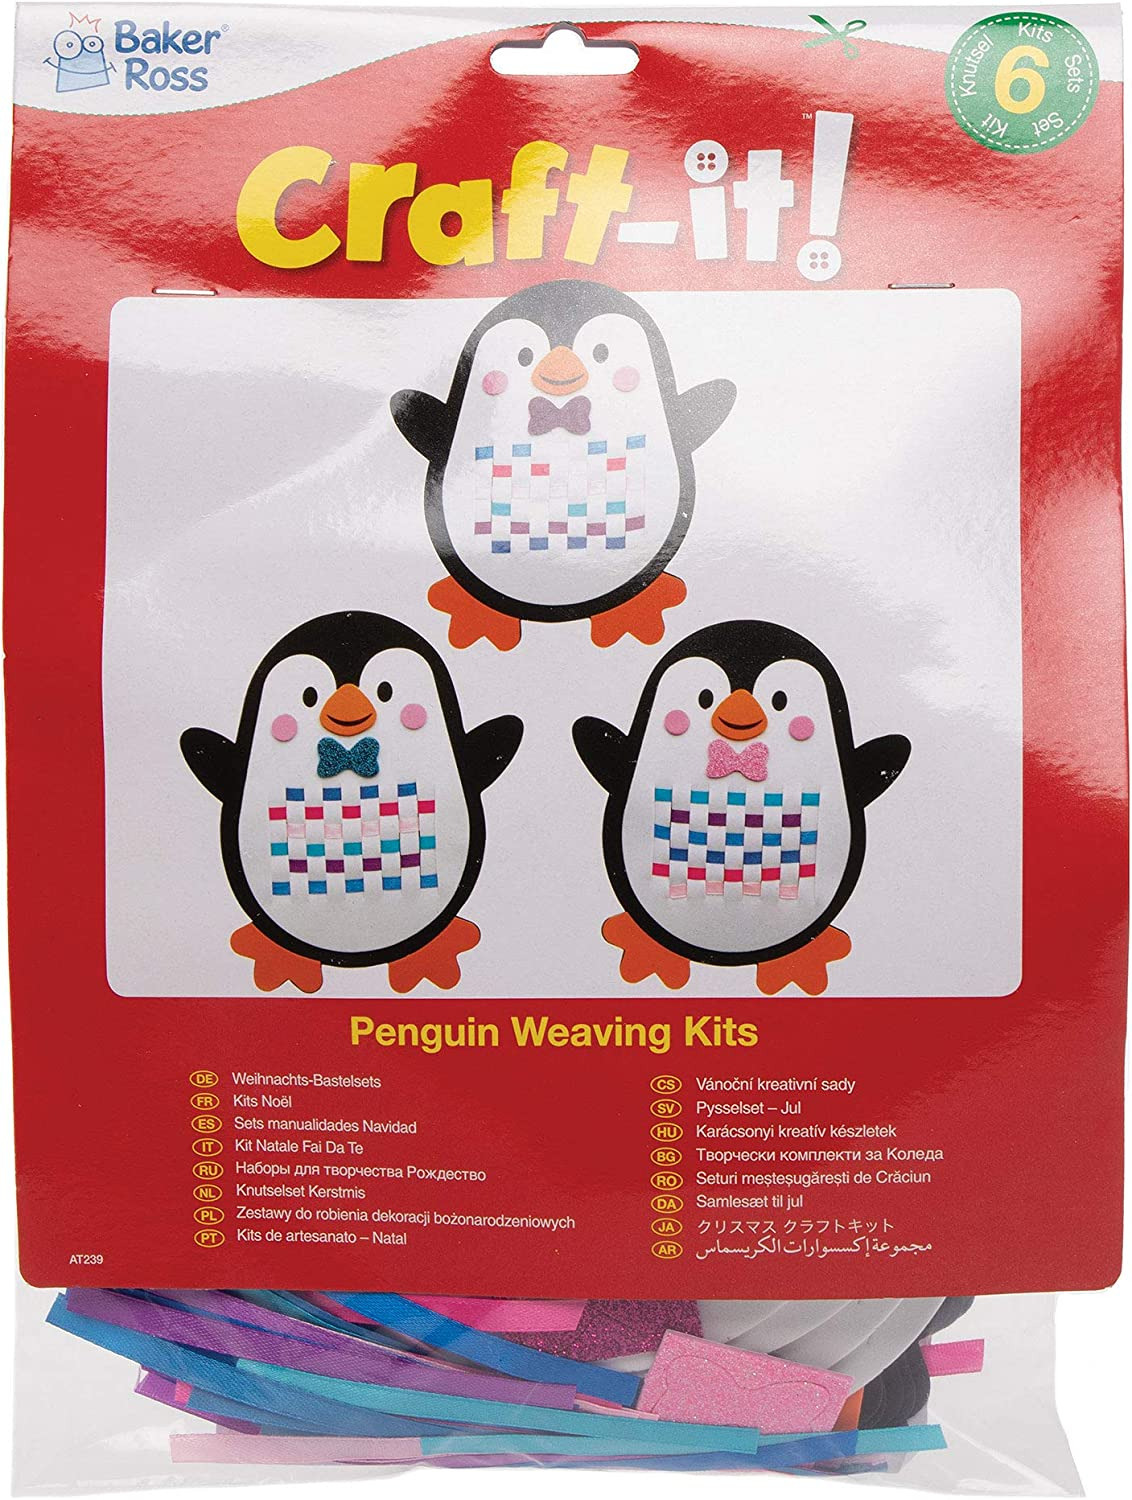 -Christmas Arts and Crafts Pack of 6 Baker Ross AT239 Penguin Weaving Kits Assorted